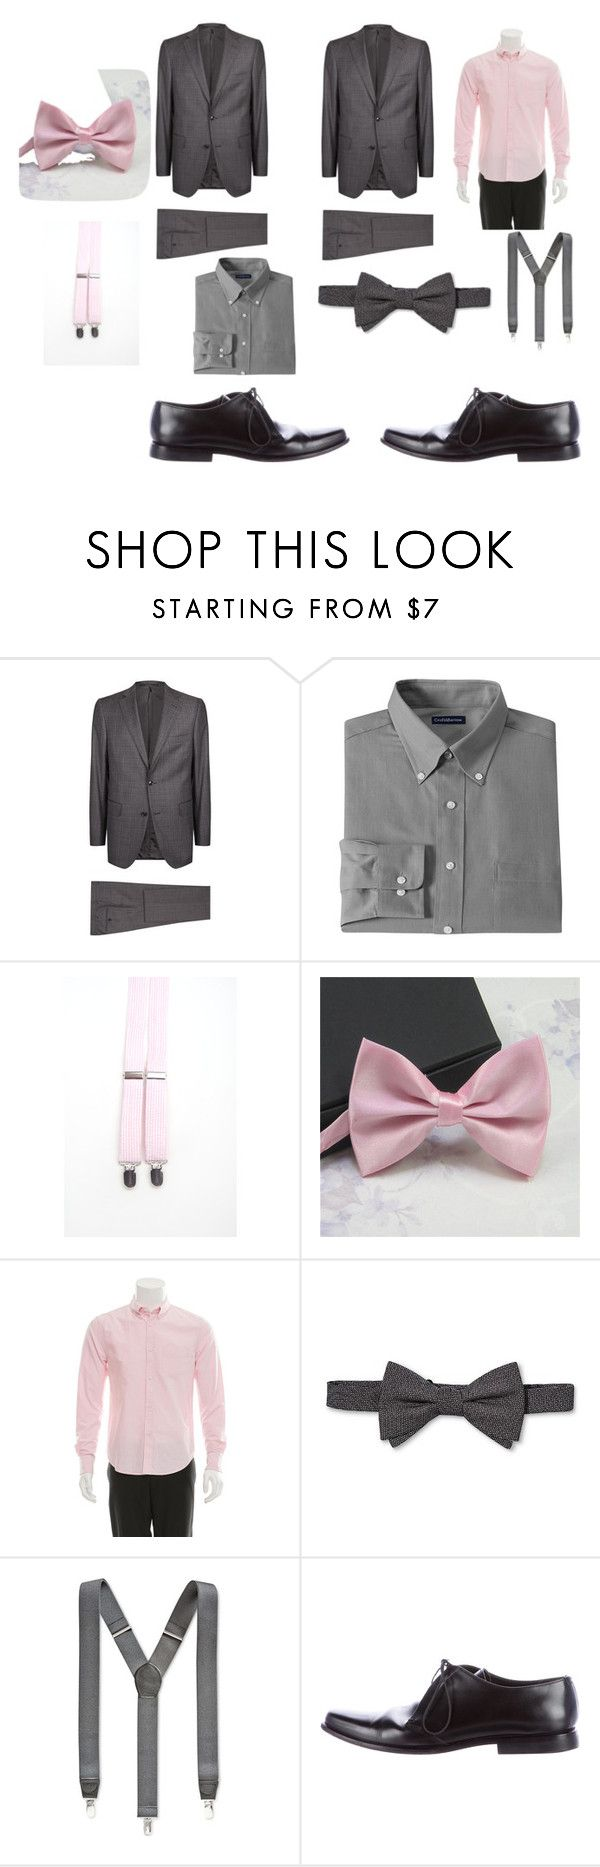 """""""Chambelanes for XV"""" by danielabeauty on Polyvore featuring Pal Zileri, Croft & Barrow, Band of Outsiders, City of London, Club Room and Prada"""